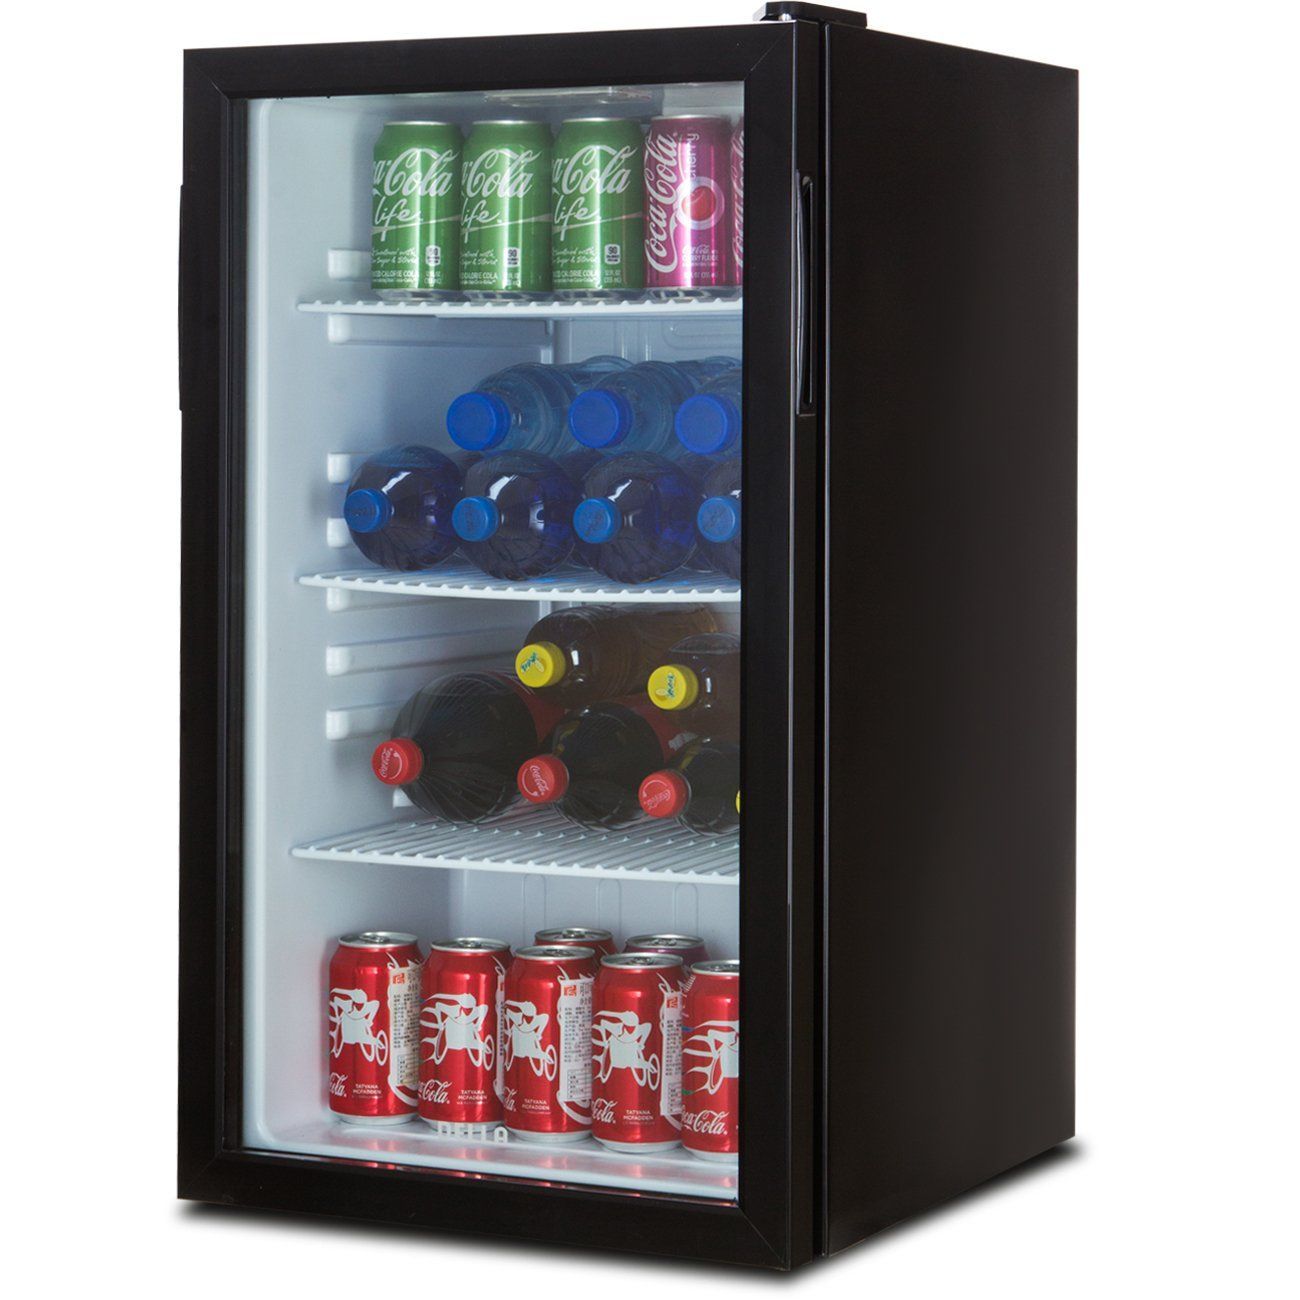 Della Beverage Refrigerator Cooler Compact Mini Bar Fridge Beer